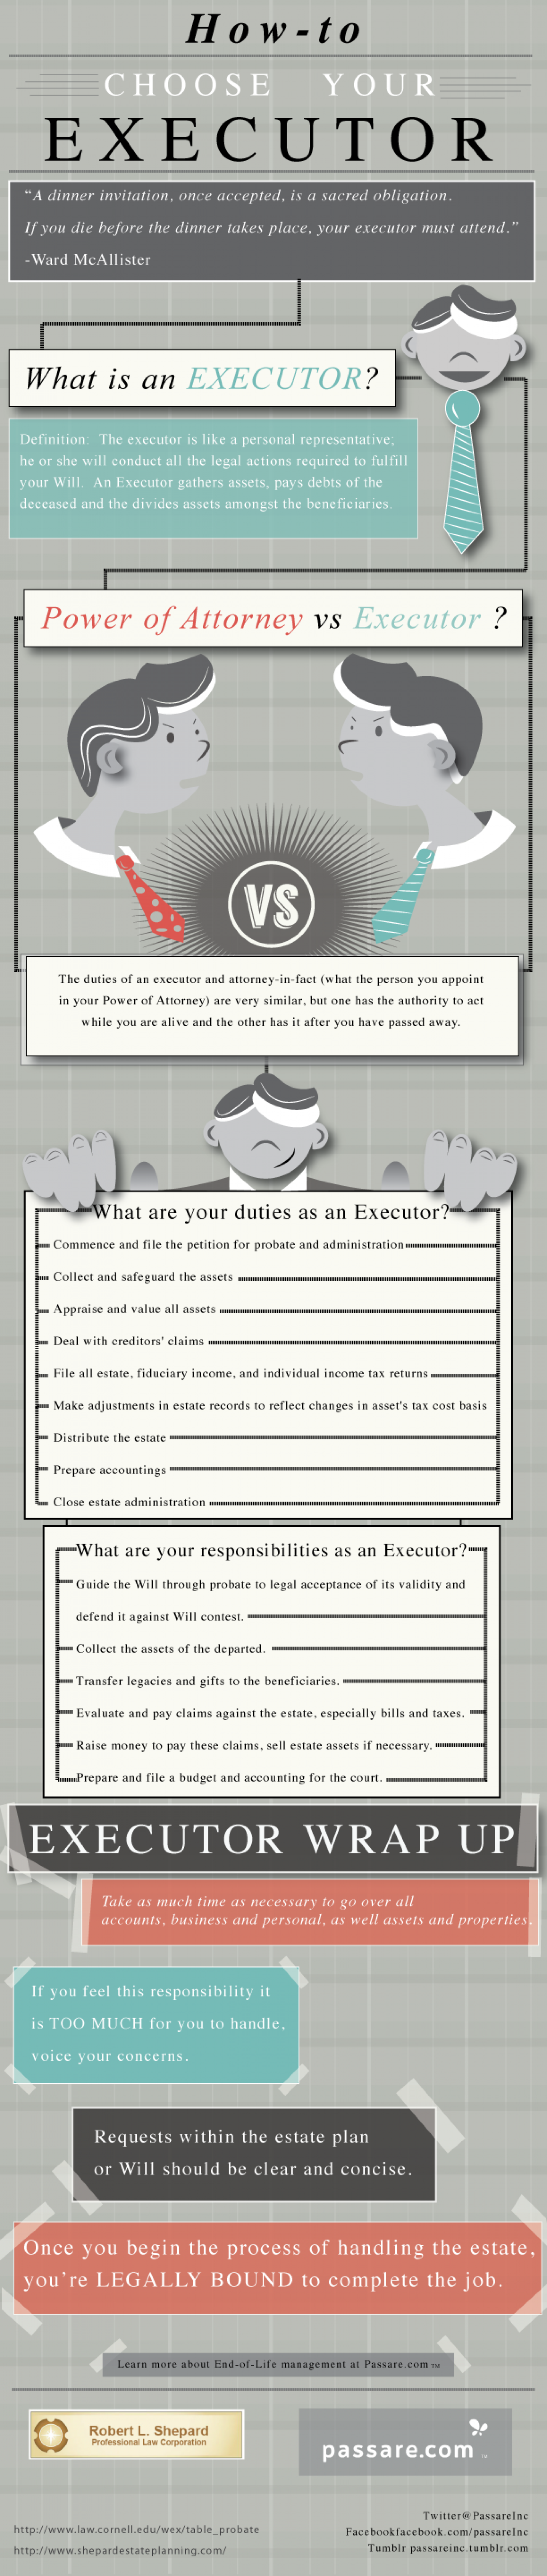 How-to Choose Your Executor Infographic